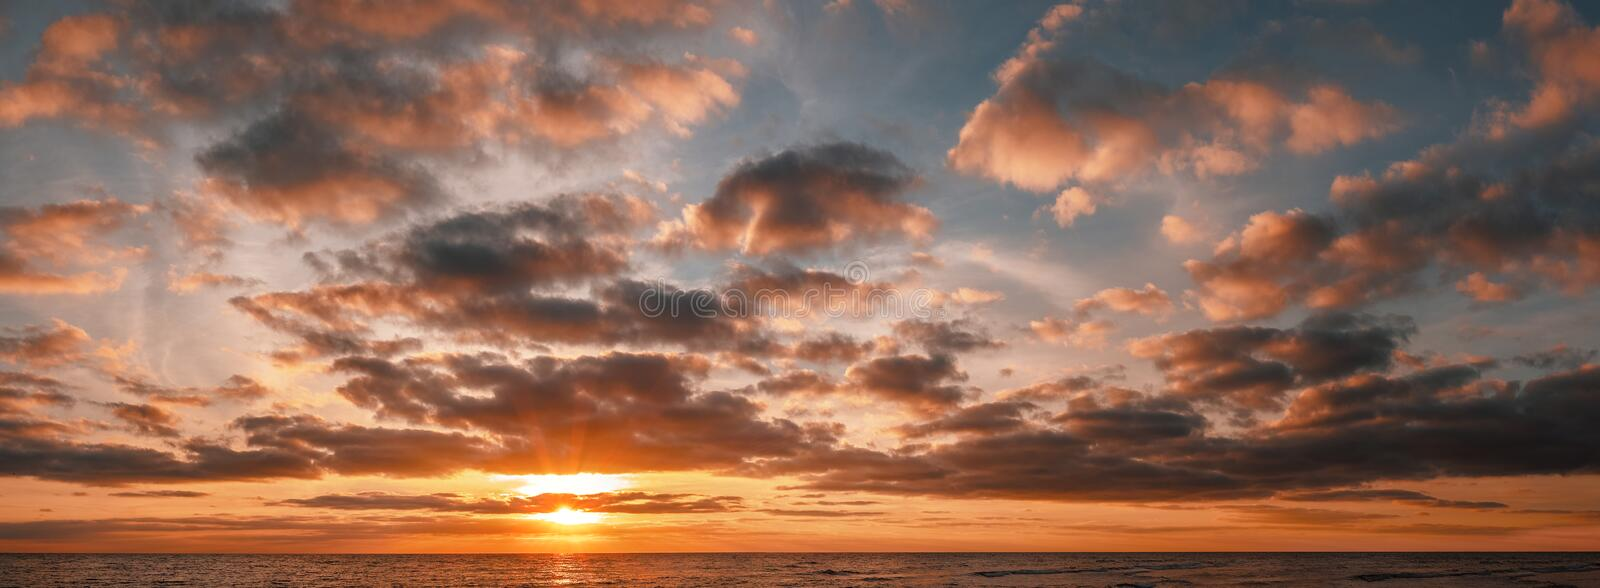 Panoramic shot of a sunrise over the ocean stock photos